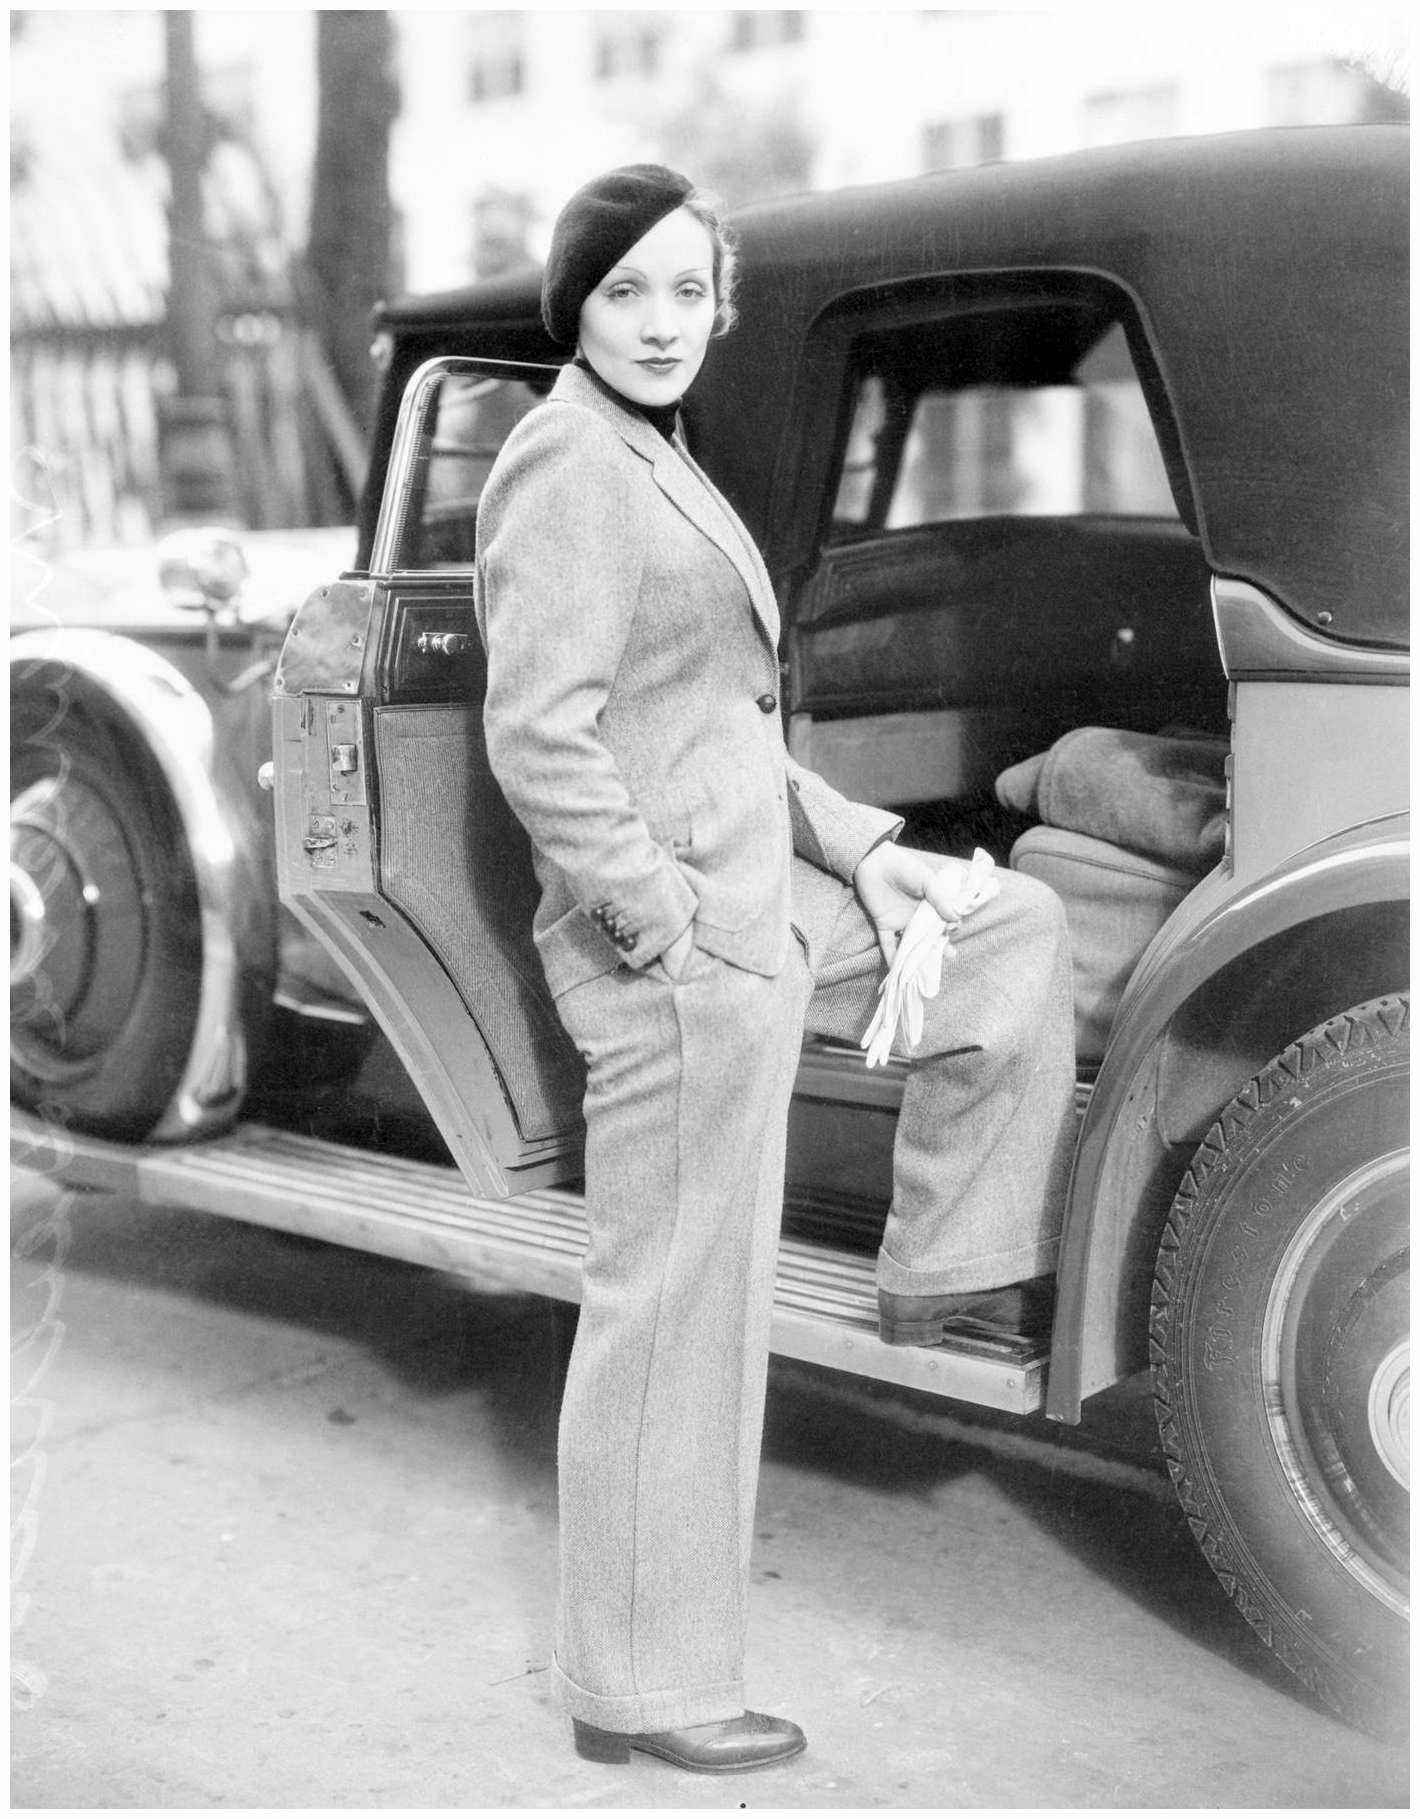 Marlene Dietrich and the Rolls-Royce in 1933 (Image by © Bettmann/CORBIS)